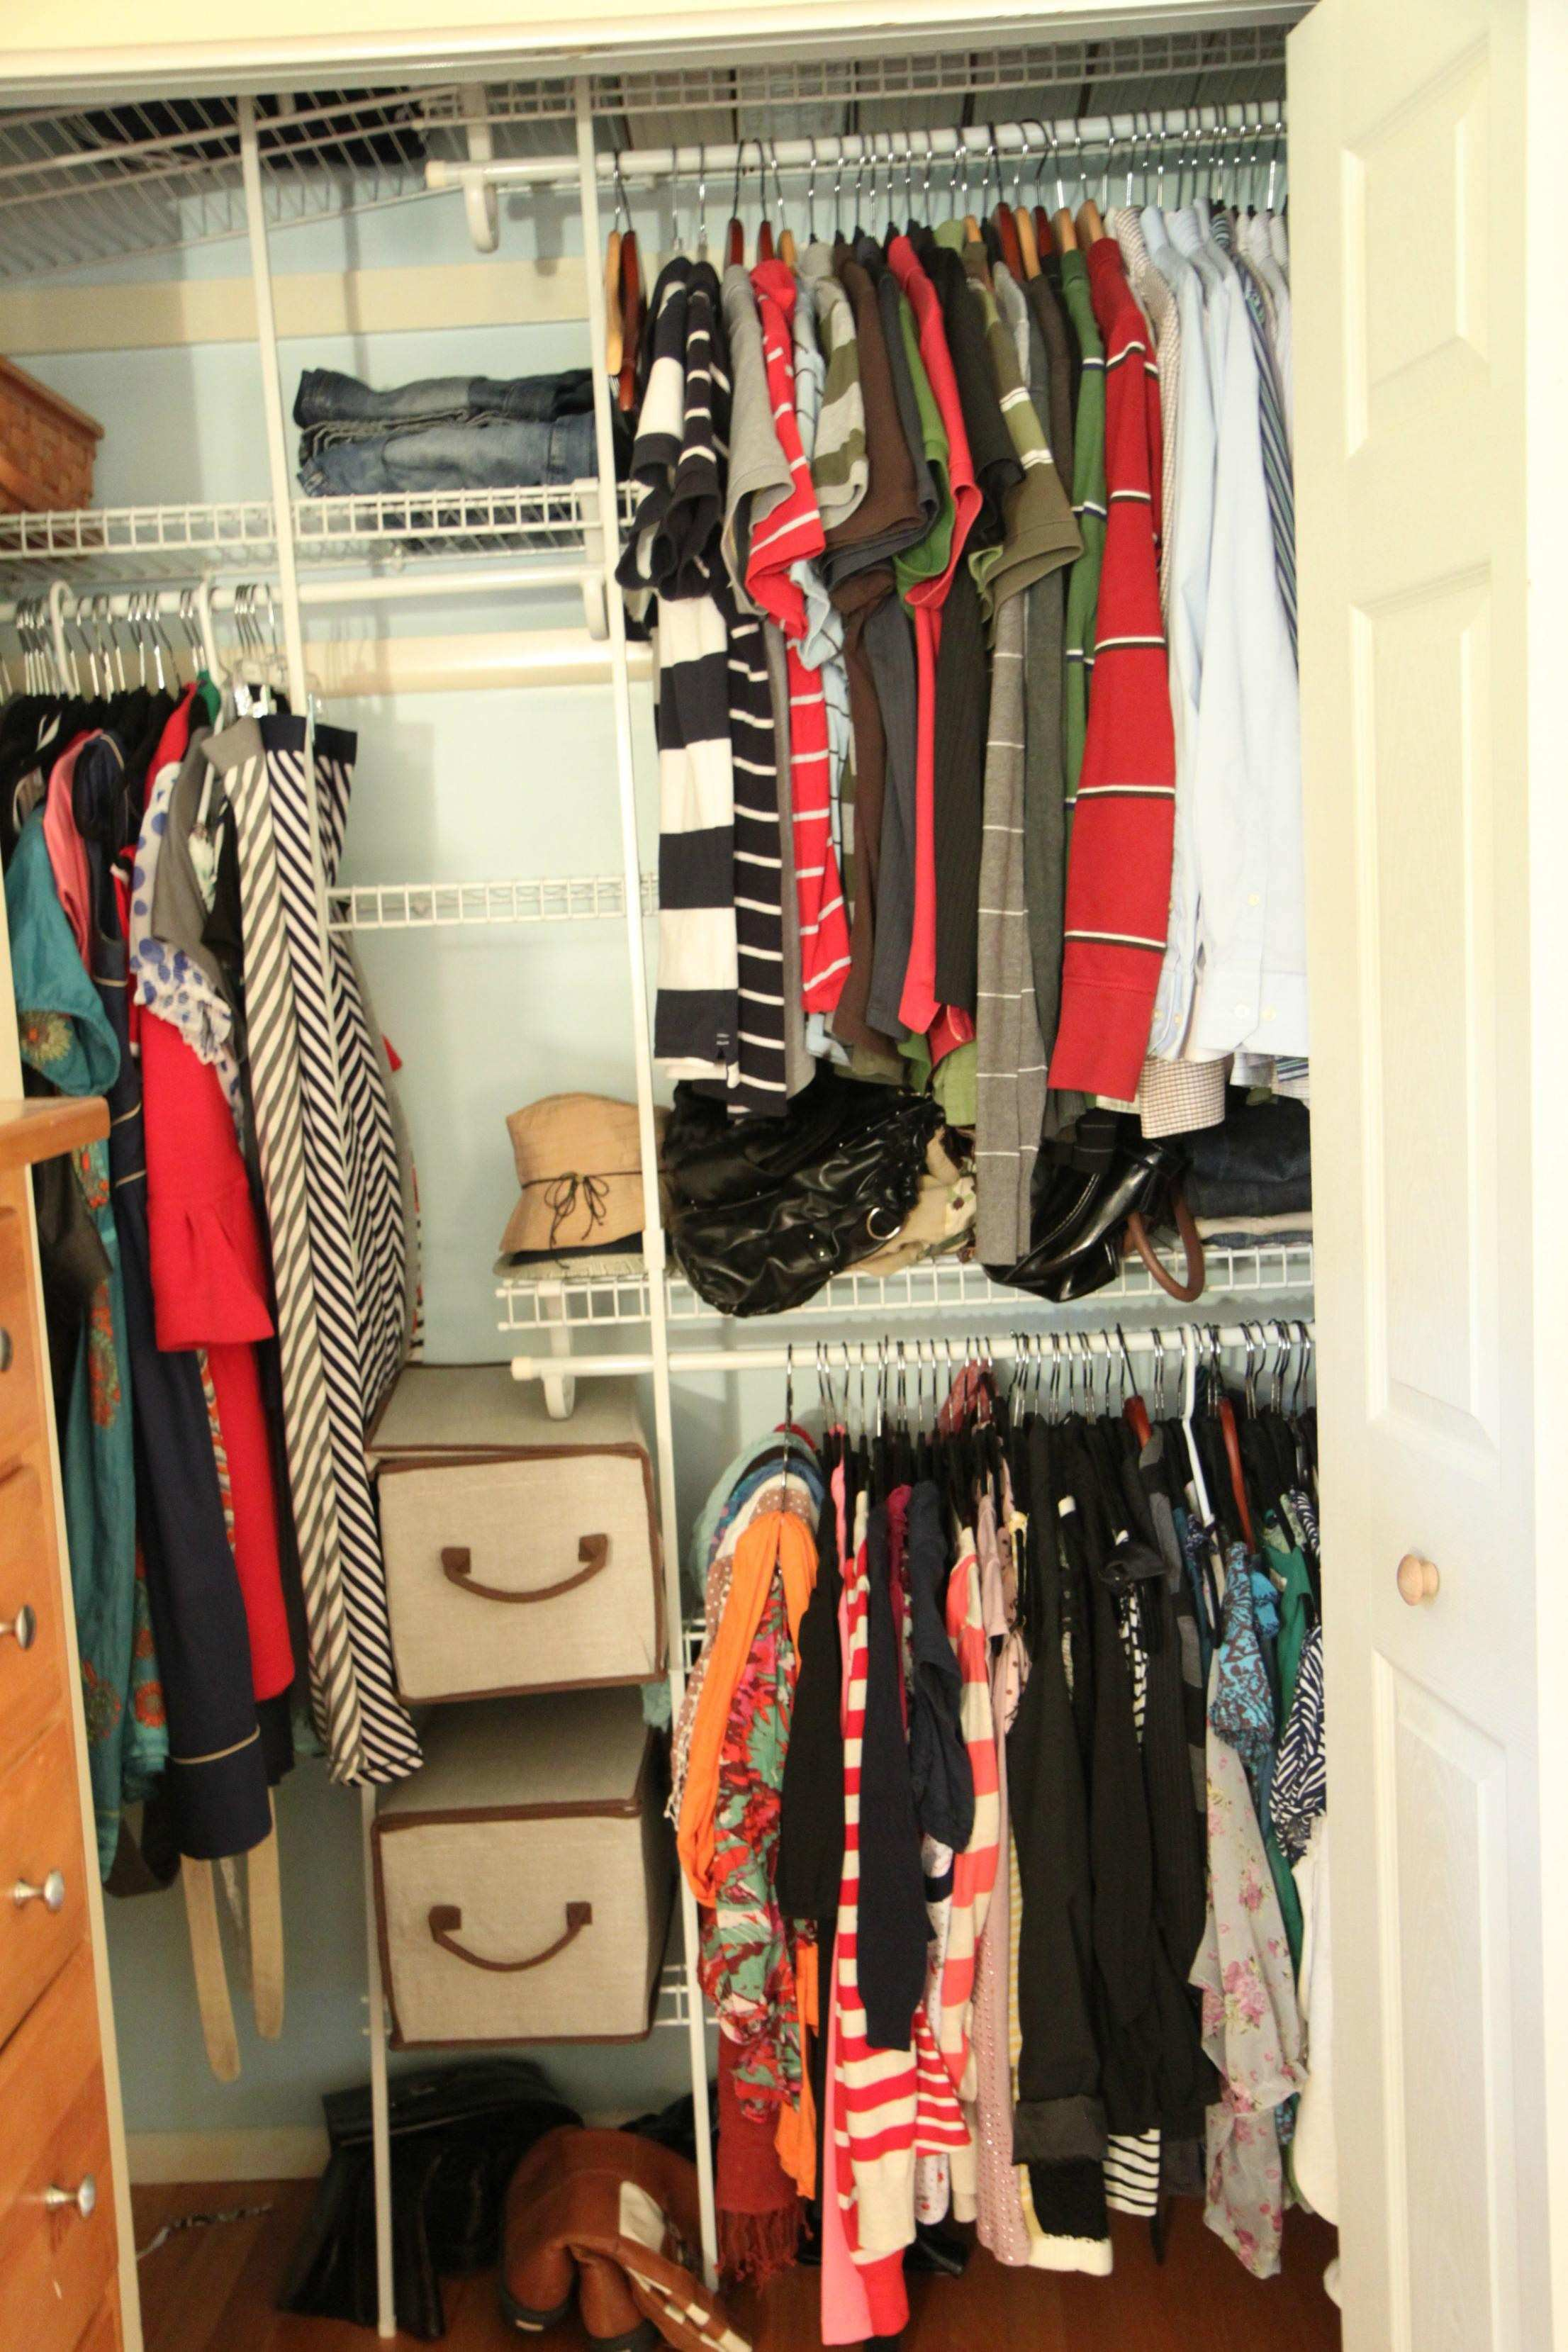 Hanging Storage Shelves for Closet How to Maximize Storage Space In